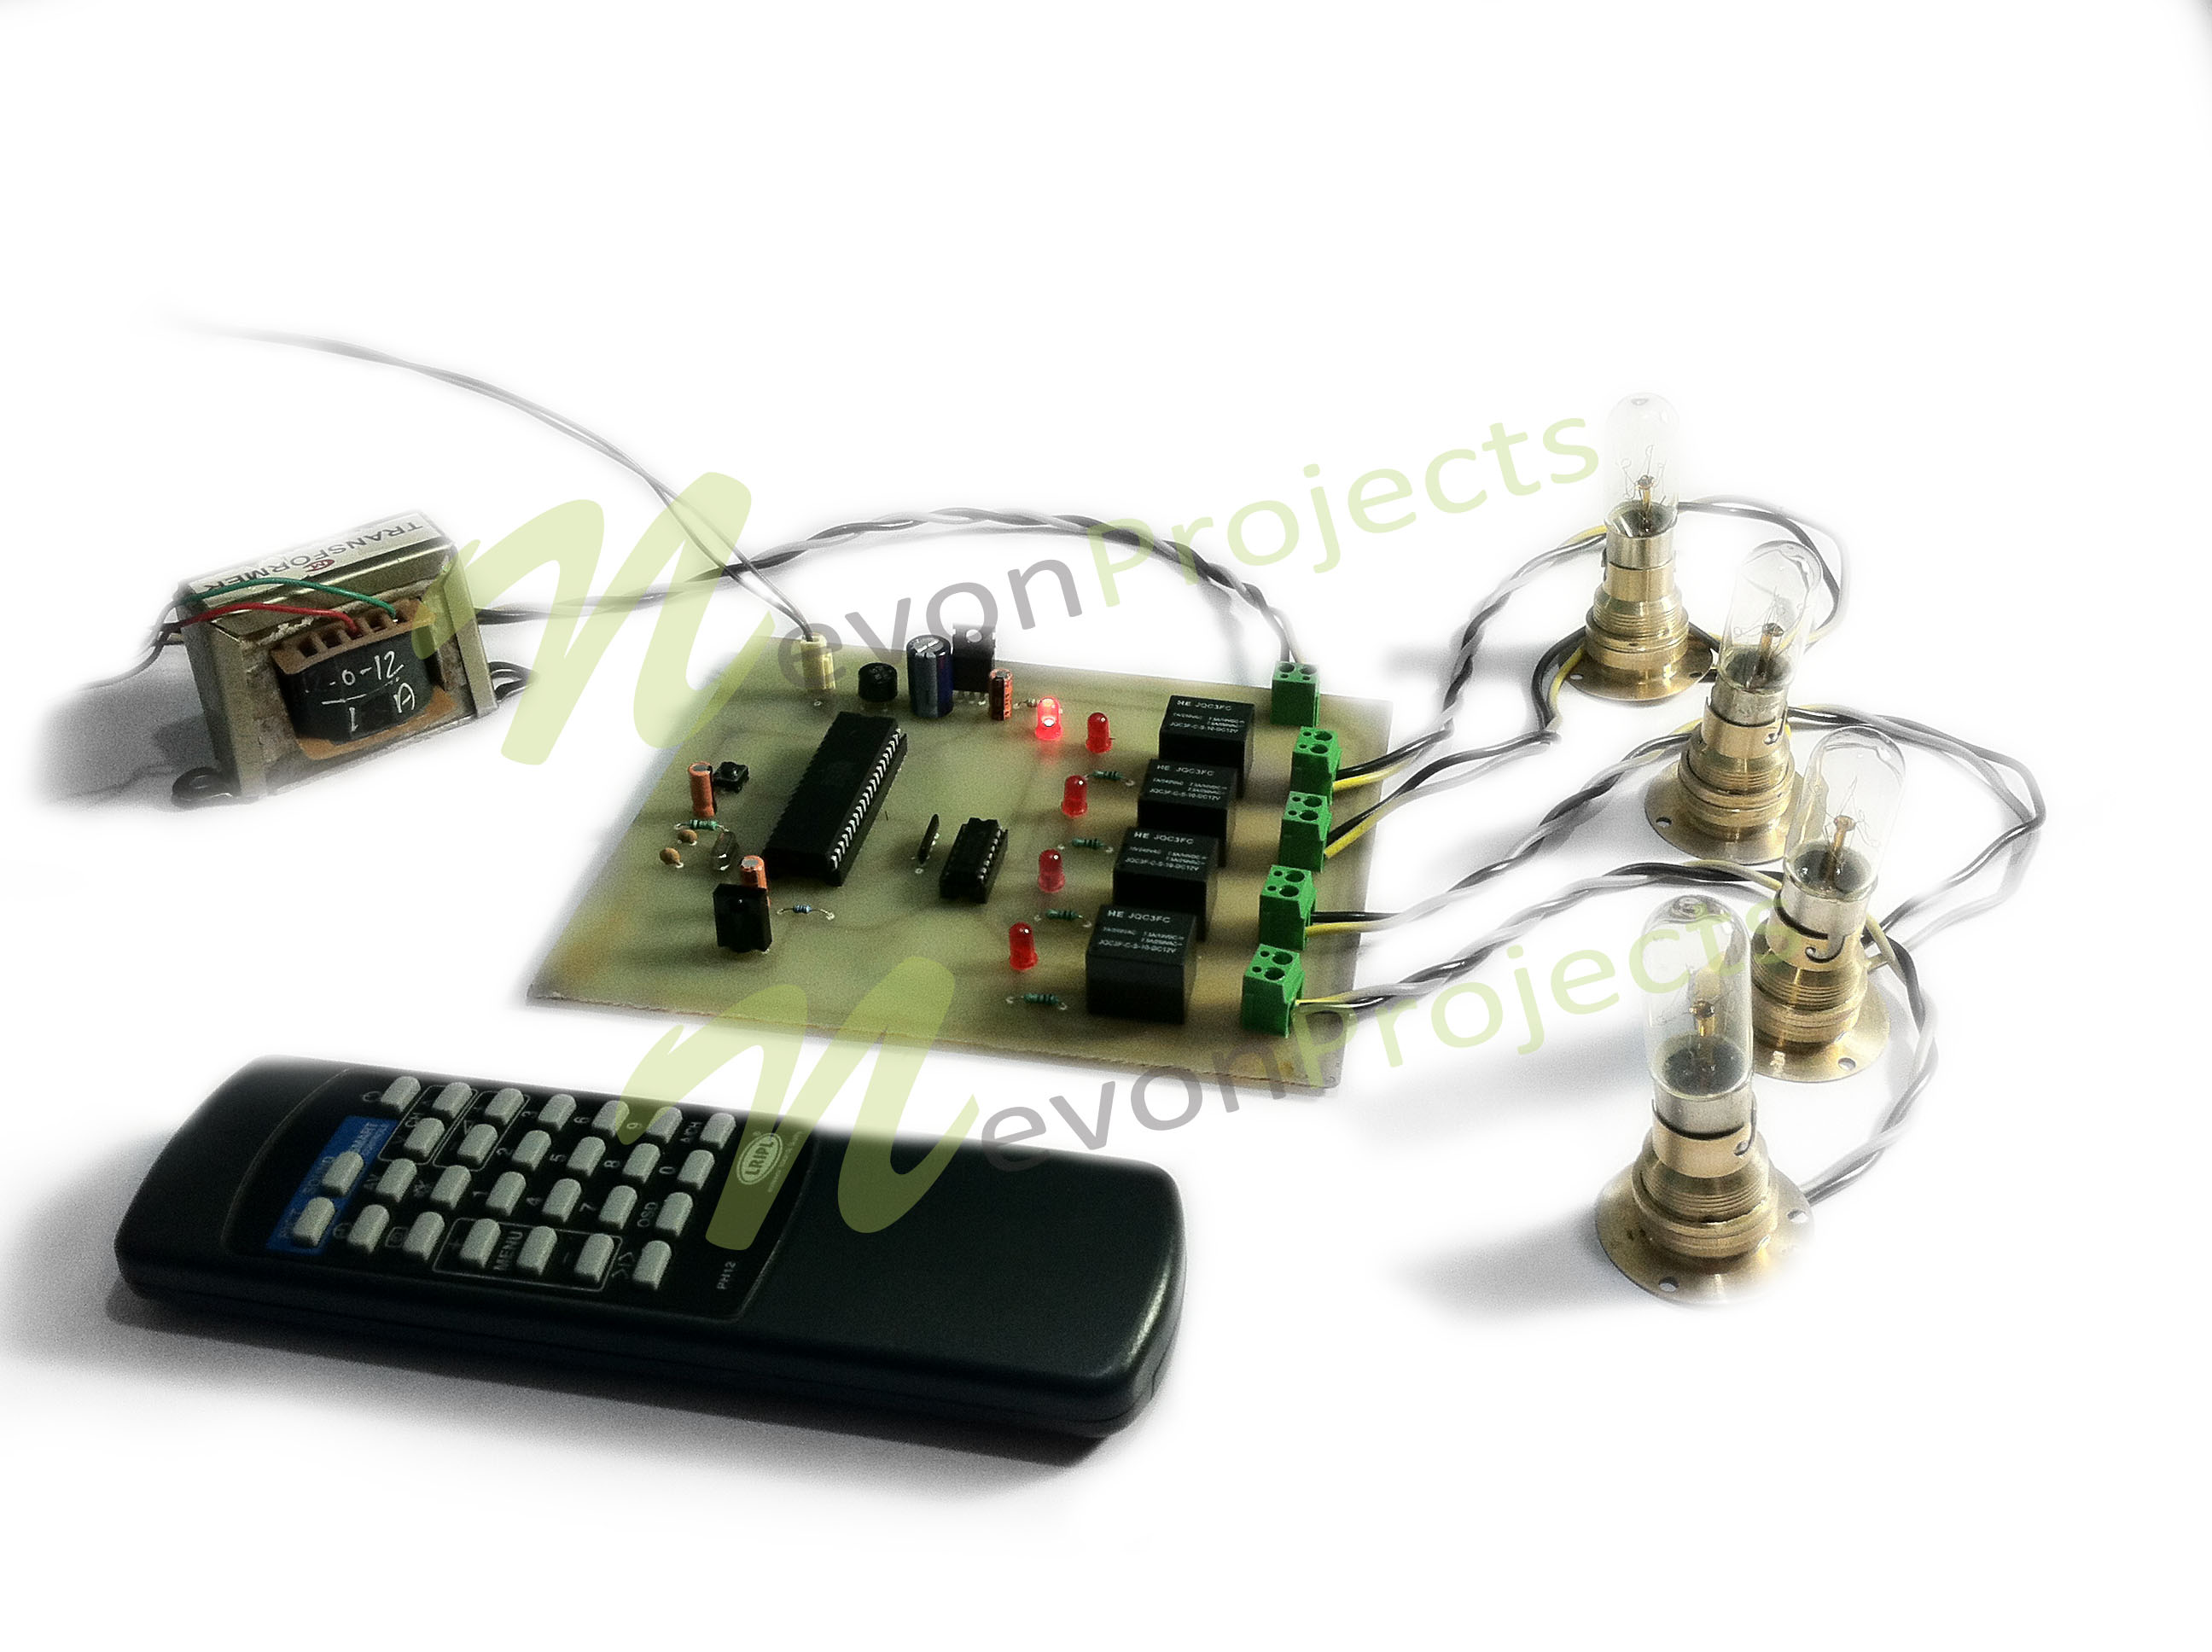 TV Remote Controlled Home Appliances Project